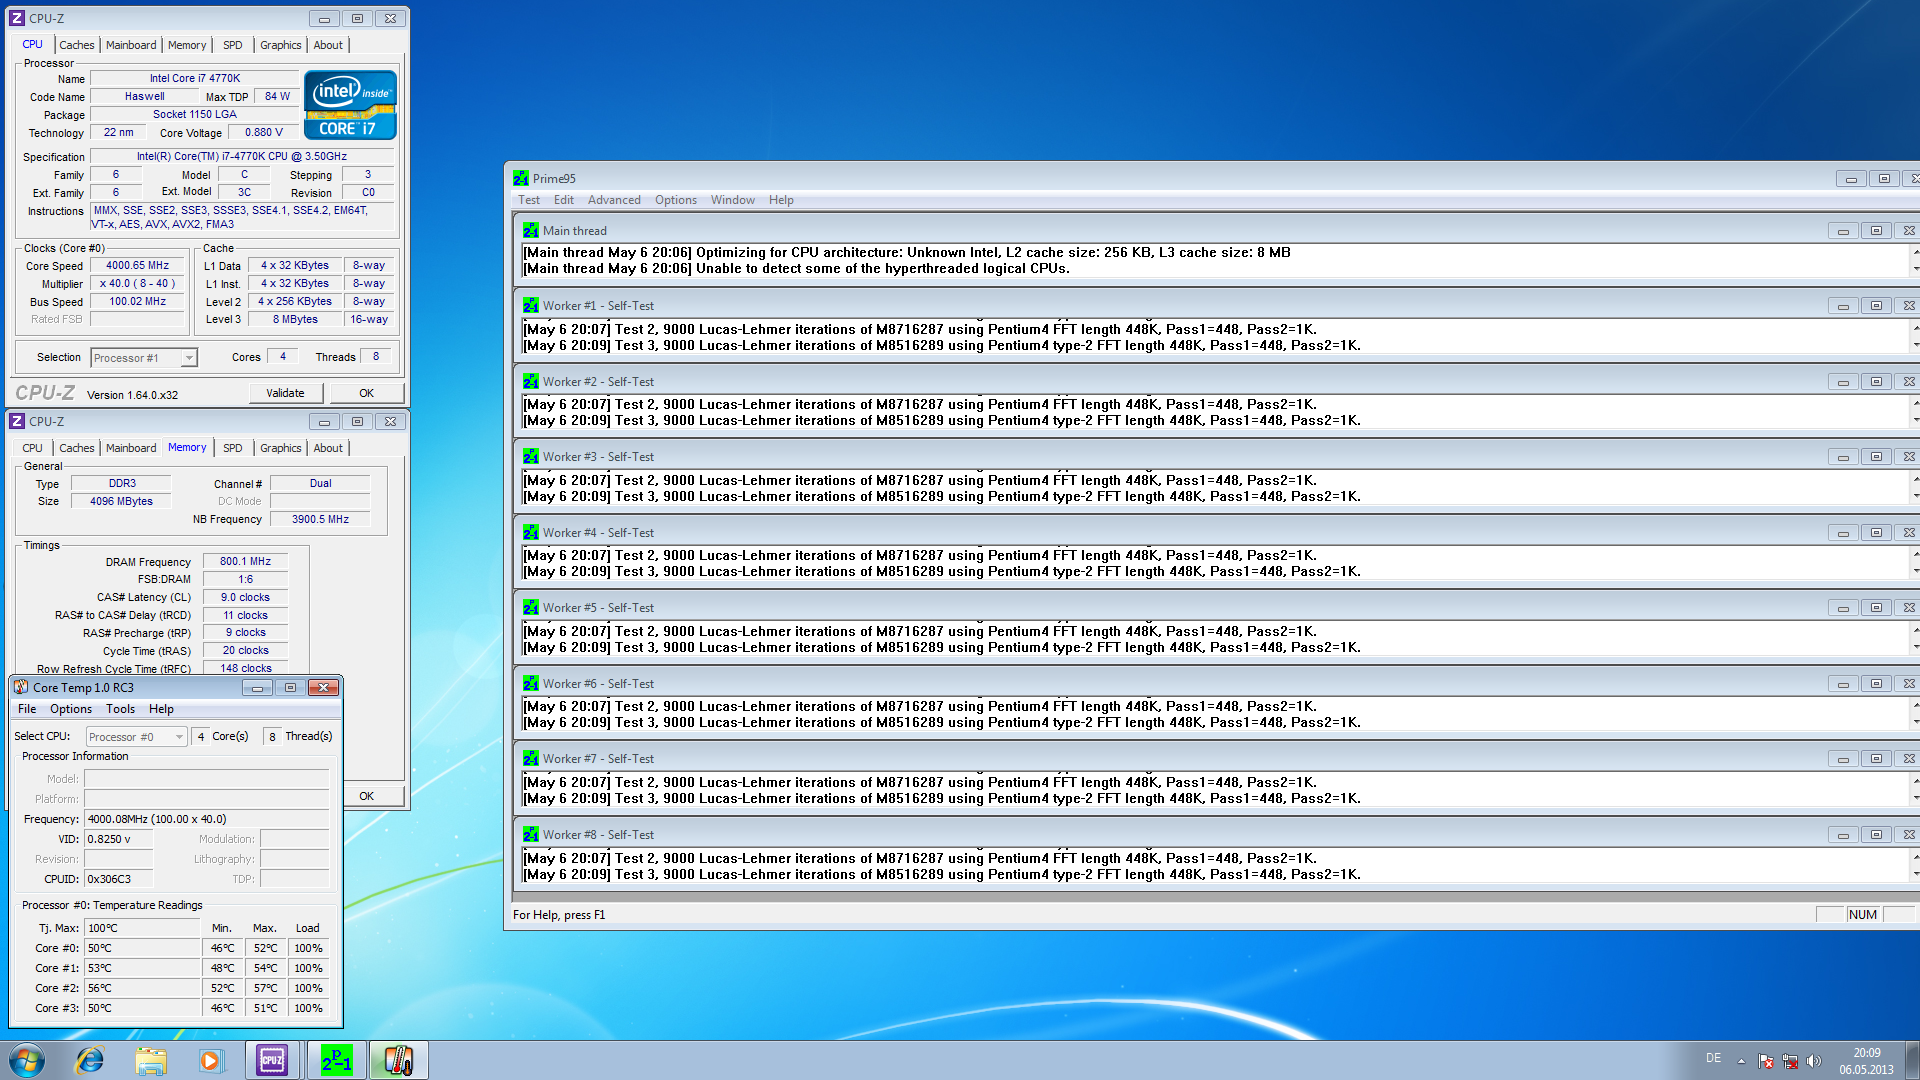 [HowTo] Intel Haswell OC Guide inkl. Haswell CPU OC-Liste-4000-stock.png